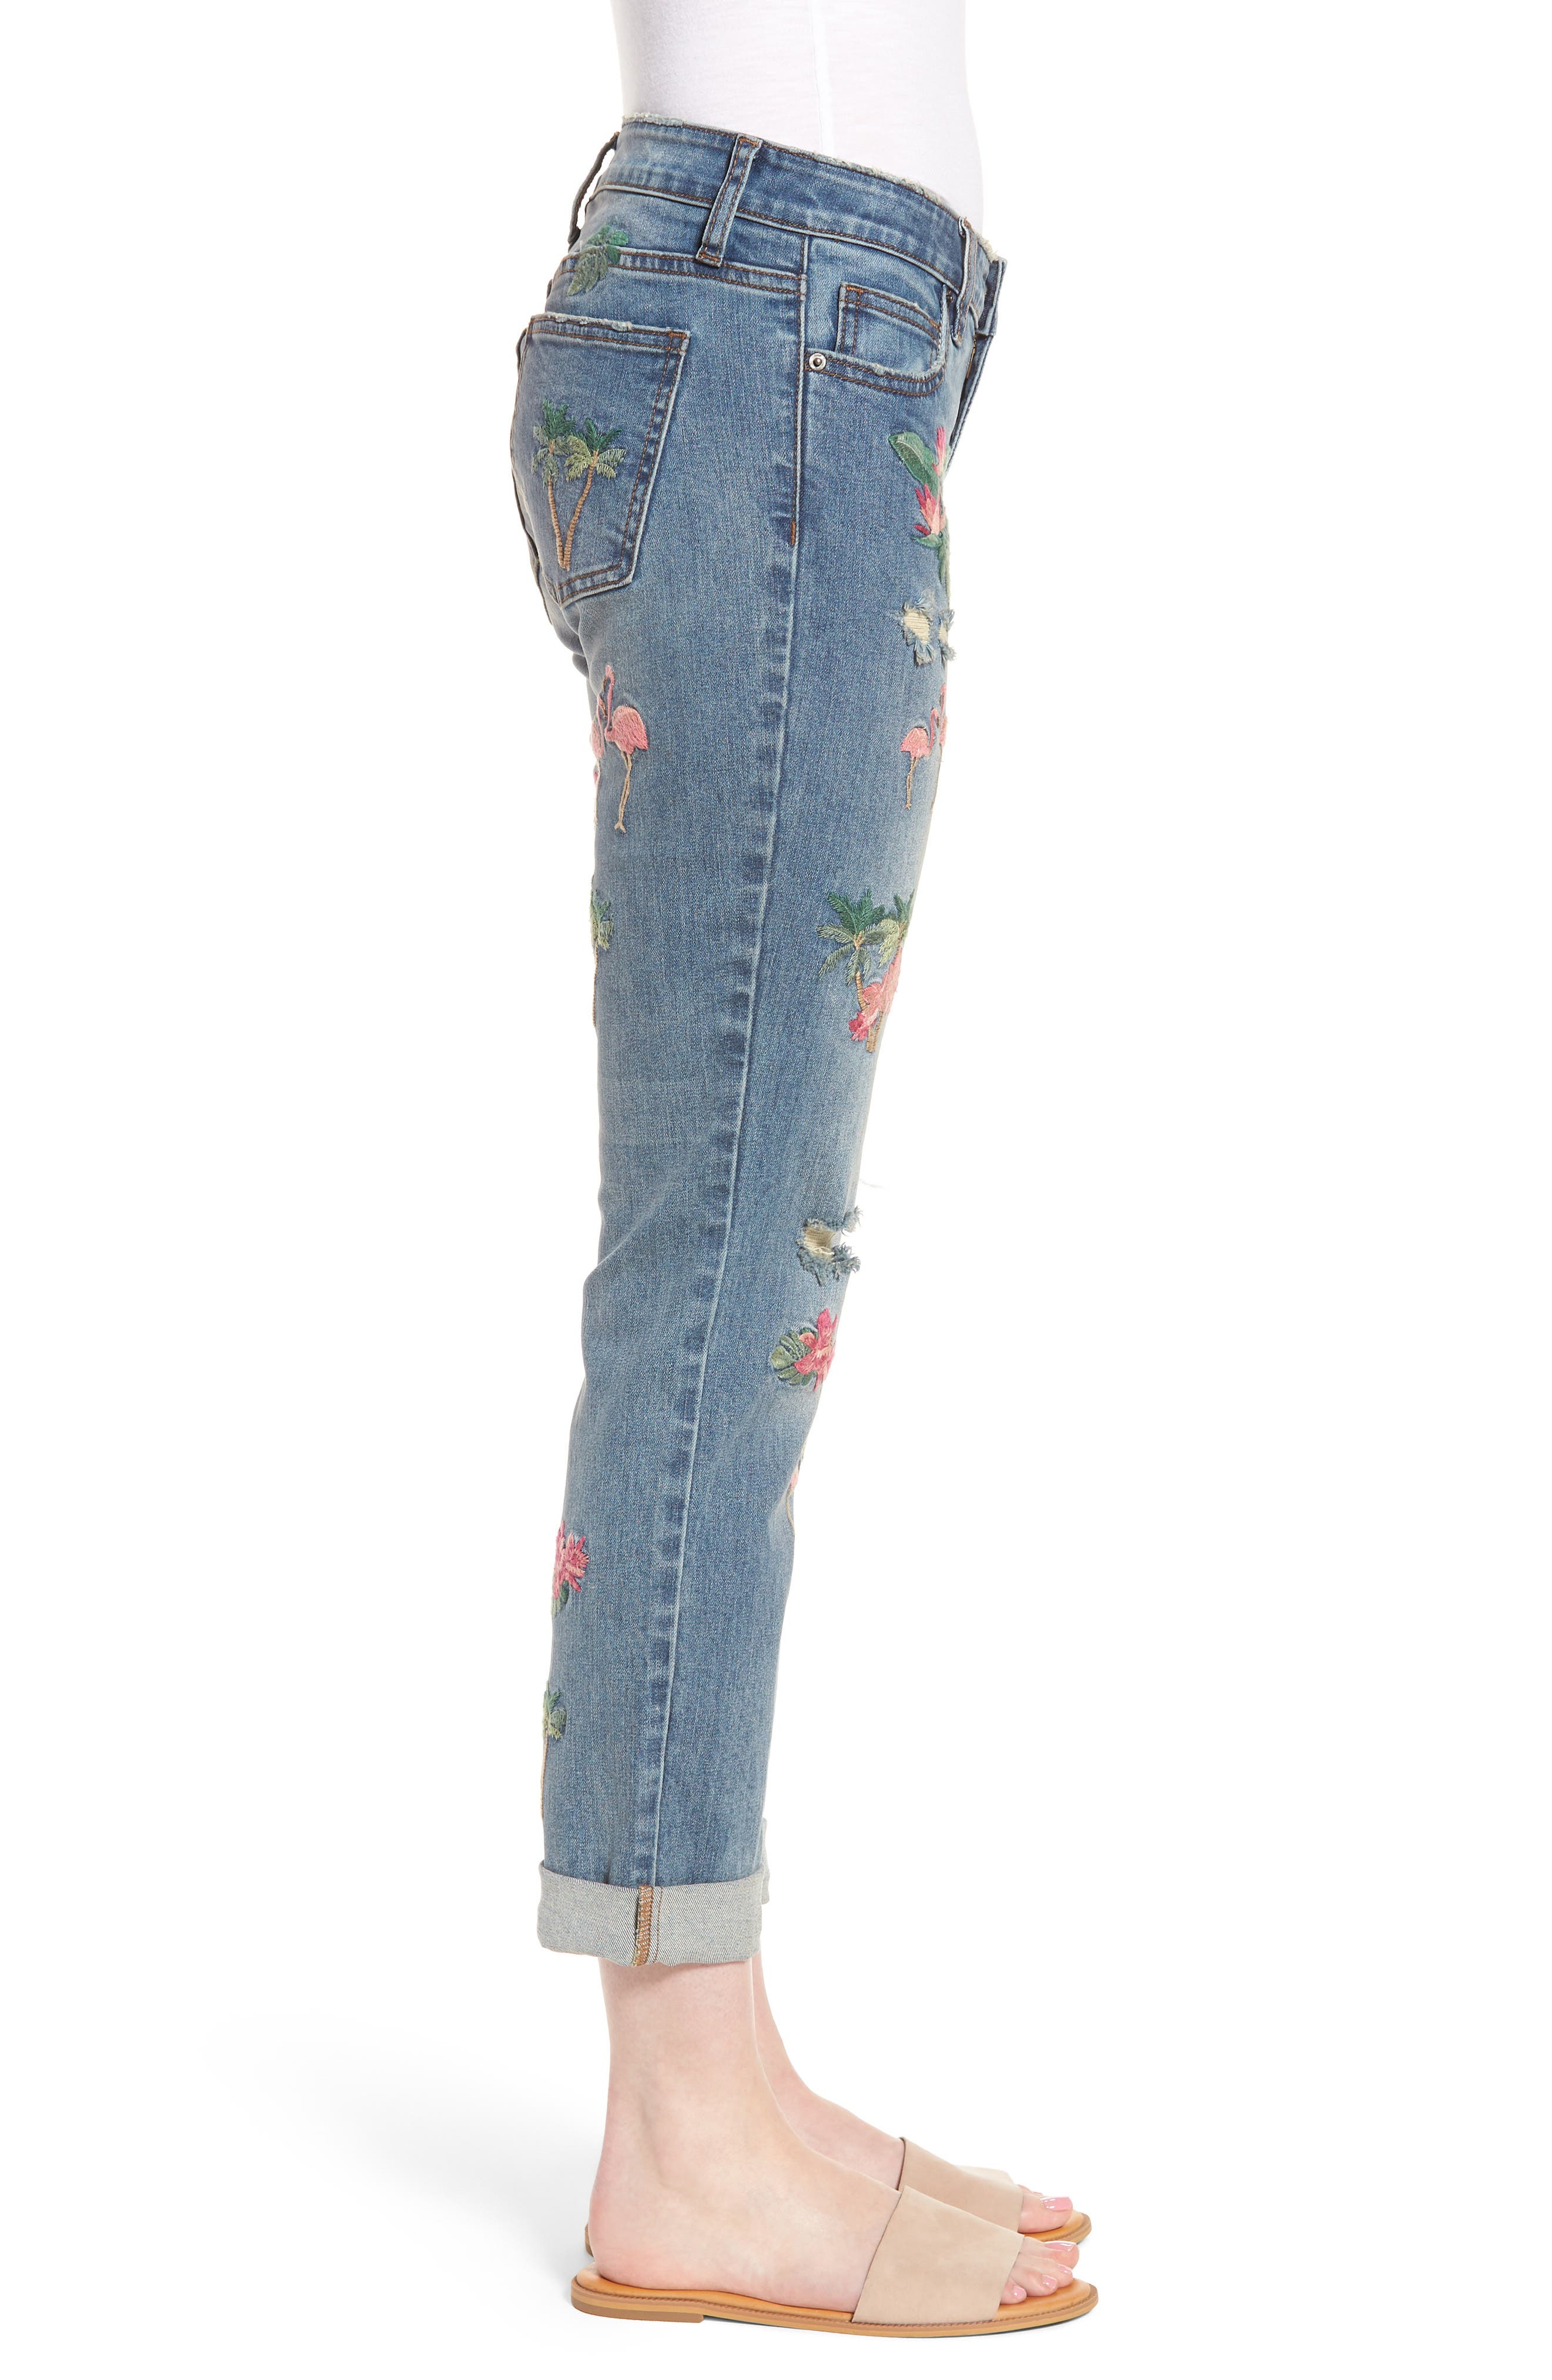 Flamingo Embroidery Jeans,                             Alternate thumbnail 2, color,                             BLUE W/ EMBROIDER